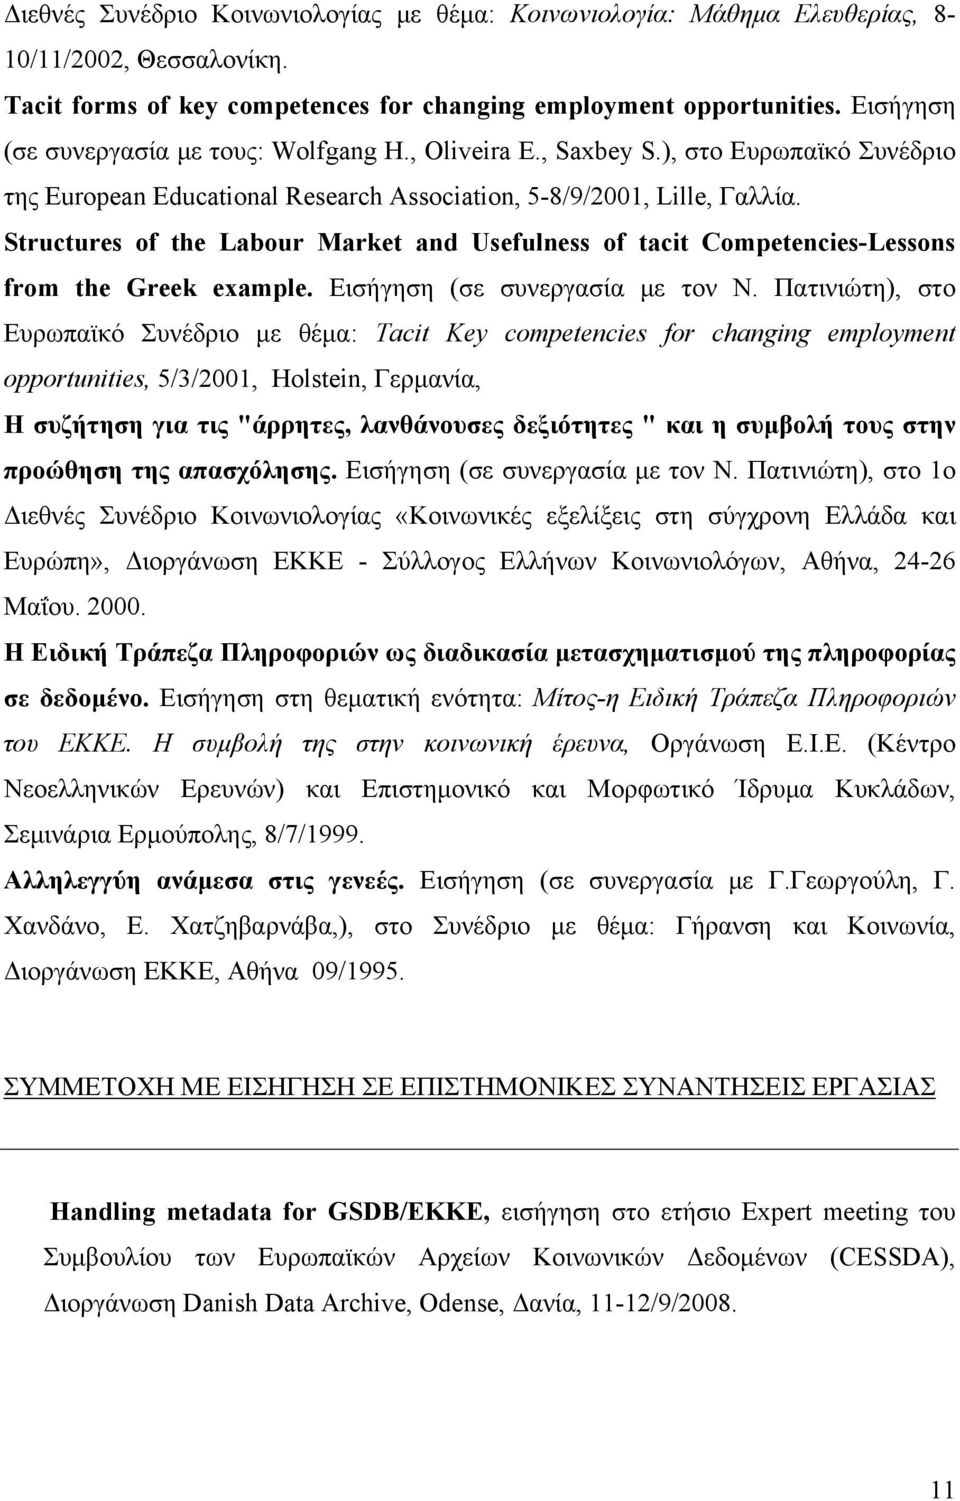 Structures of the Labour Market and Usefulness of tacit Competencies-Lessons from the Greek example. Εισήγηση (σε συνεργασία με τον Ν.